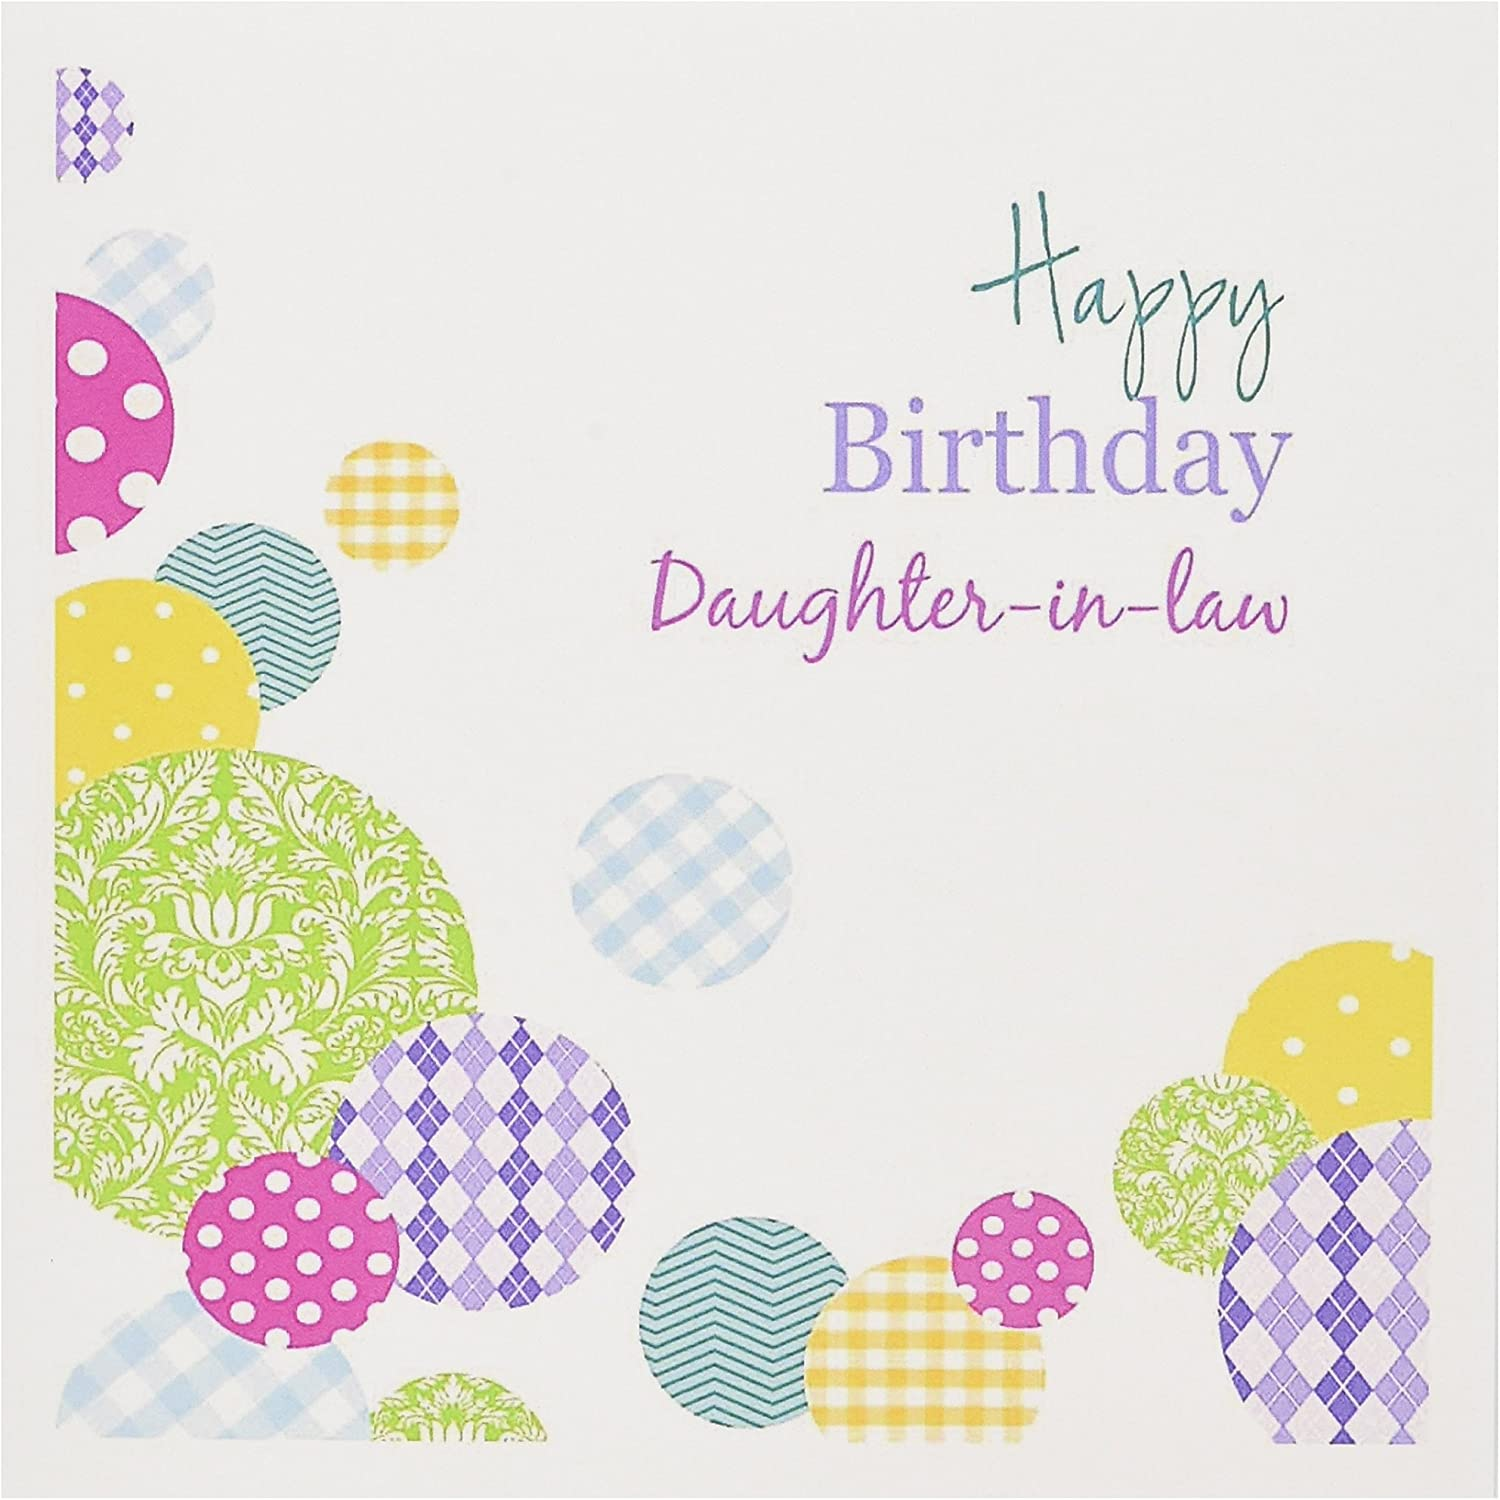 Amazon Com Happy Birthday Daughter In Law Colorful Dots On White Greeting Card 6 X 6 Inches Single Gc 165133 5 Office Products